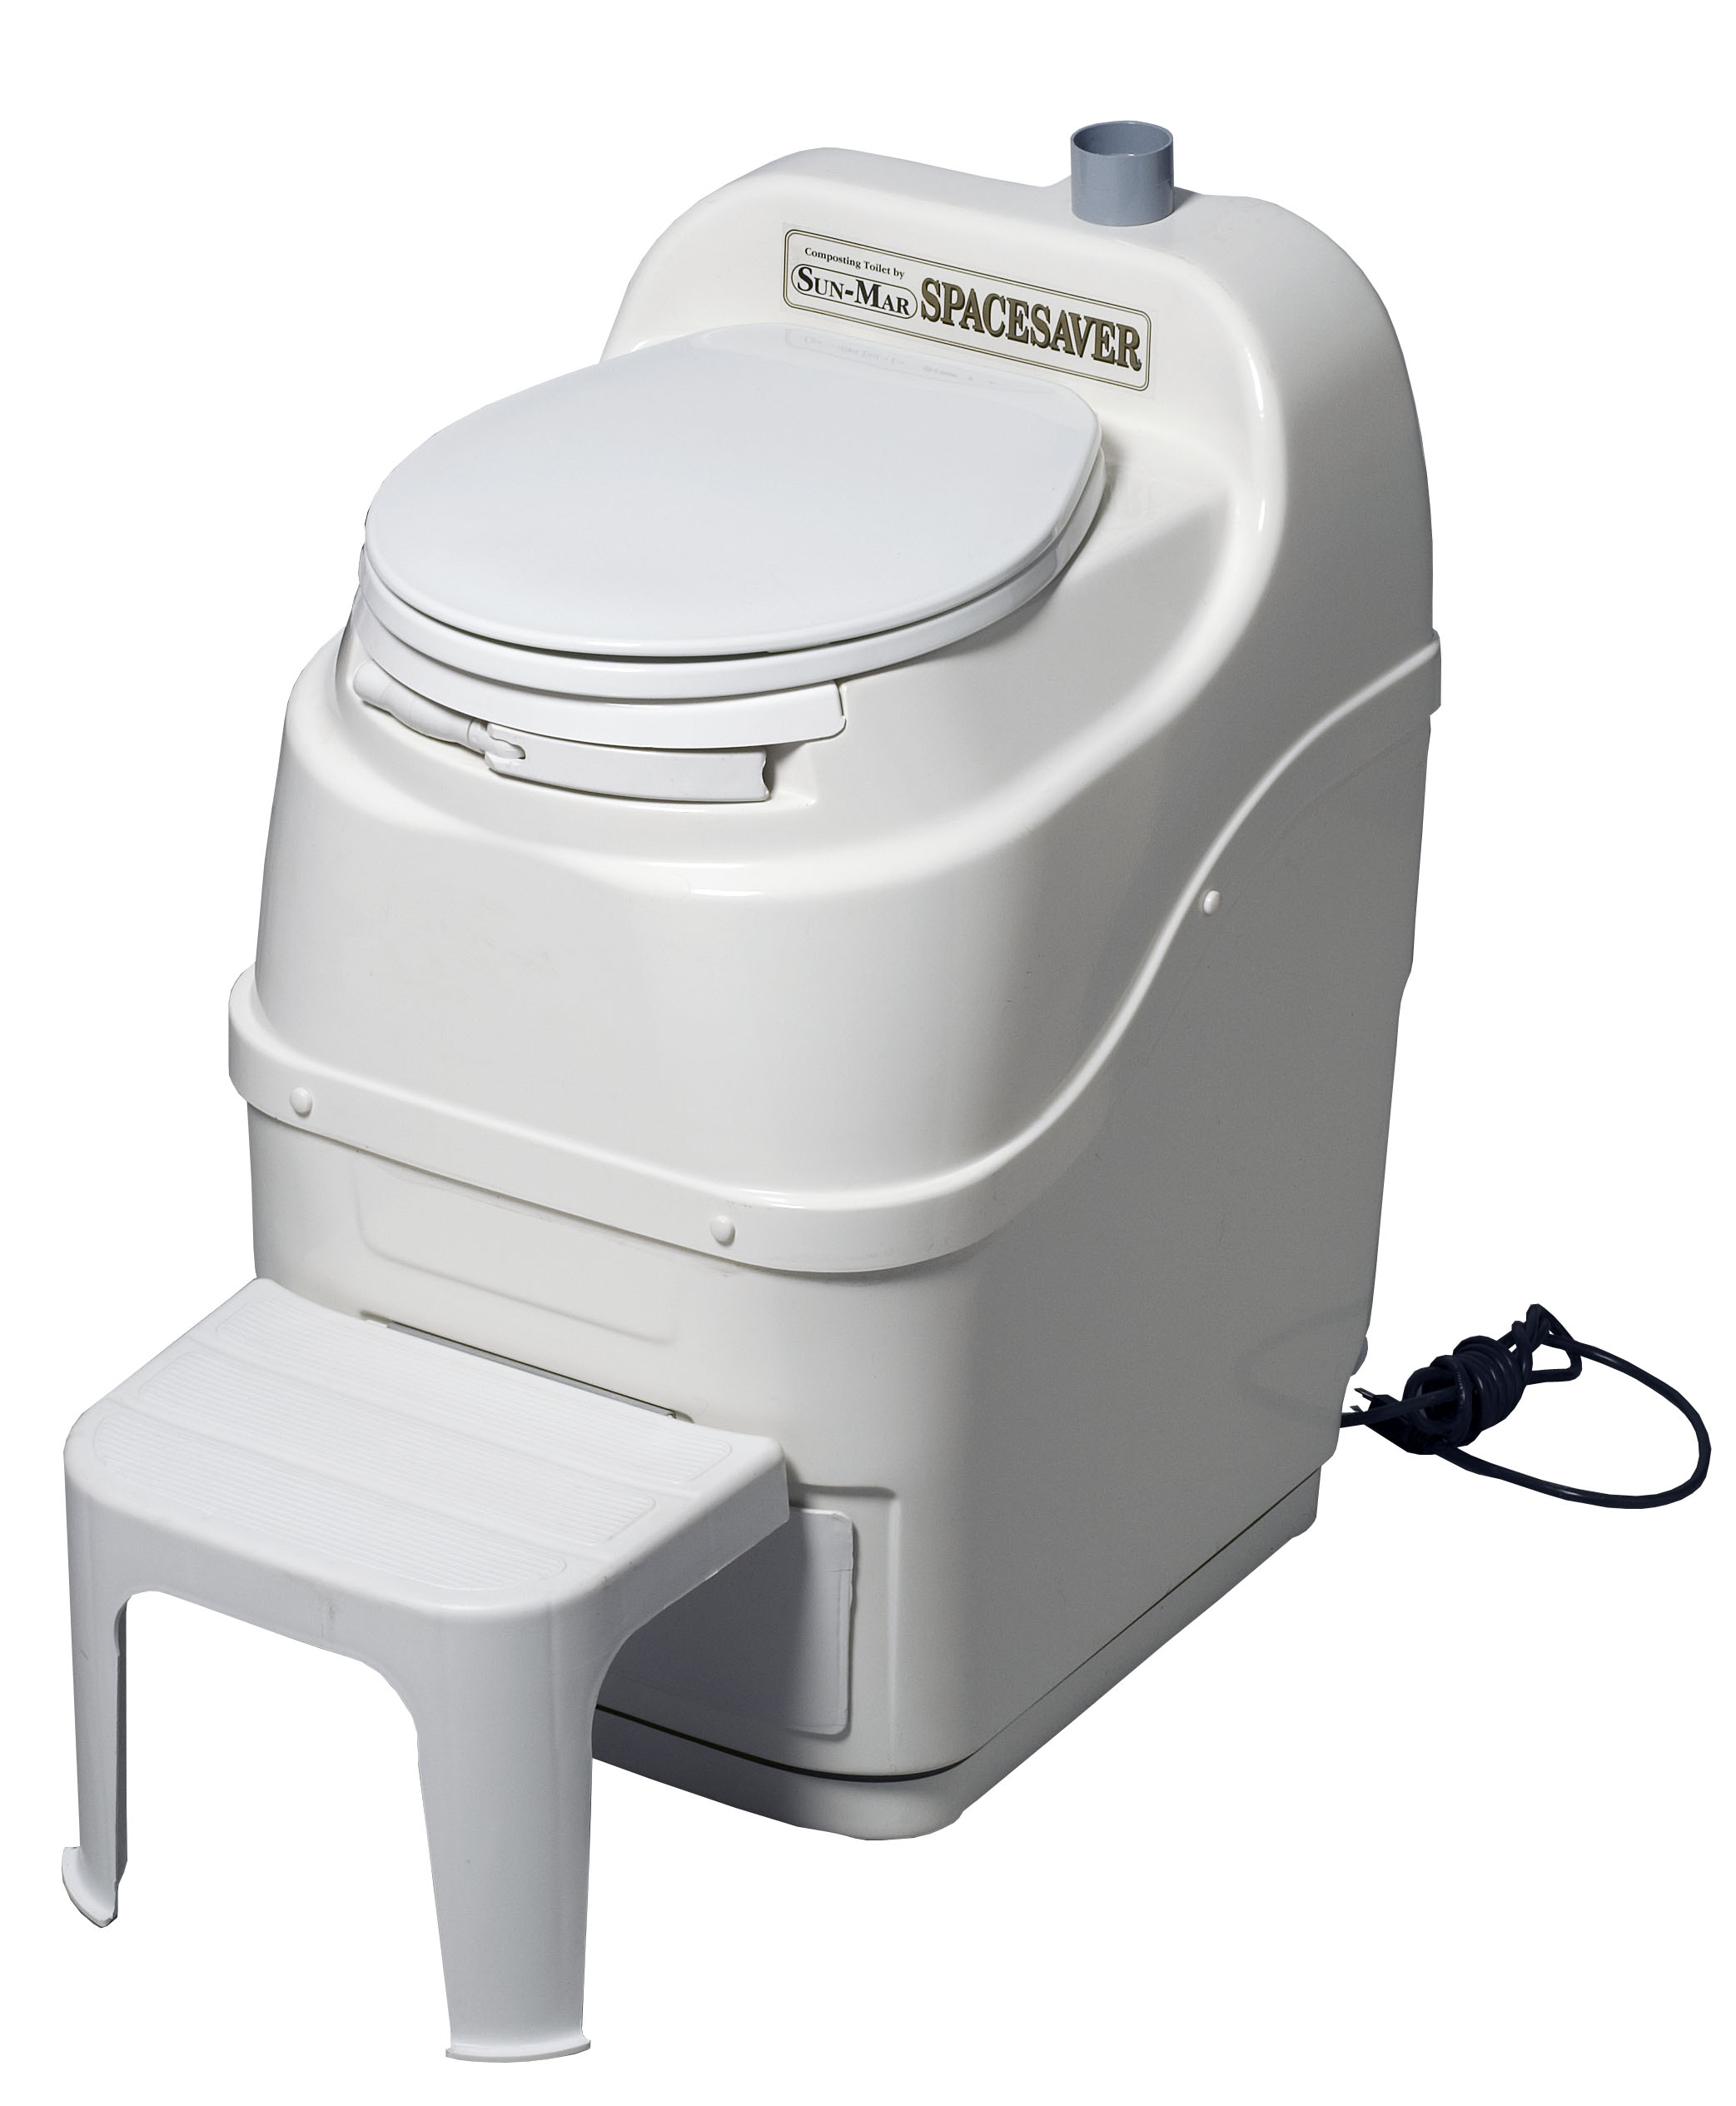 Sun-Mar Spacesaver Medium Capacity Composting Toilet Electric